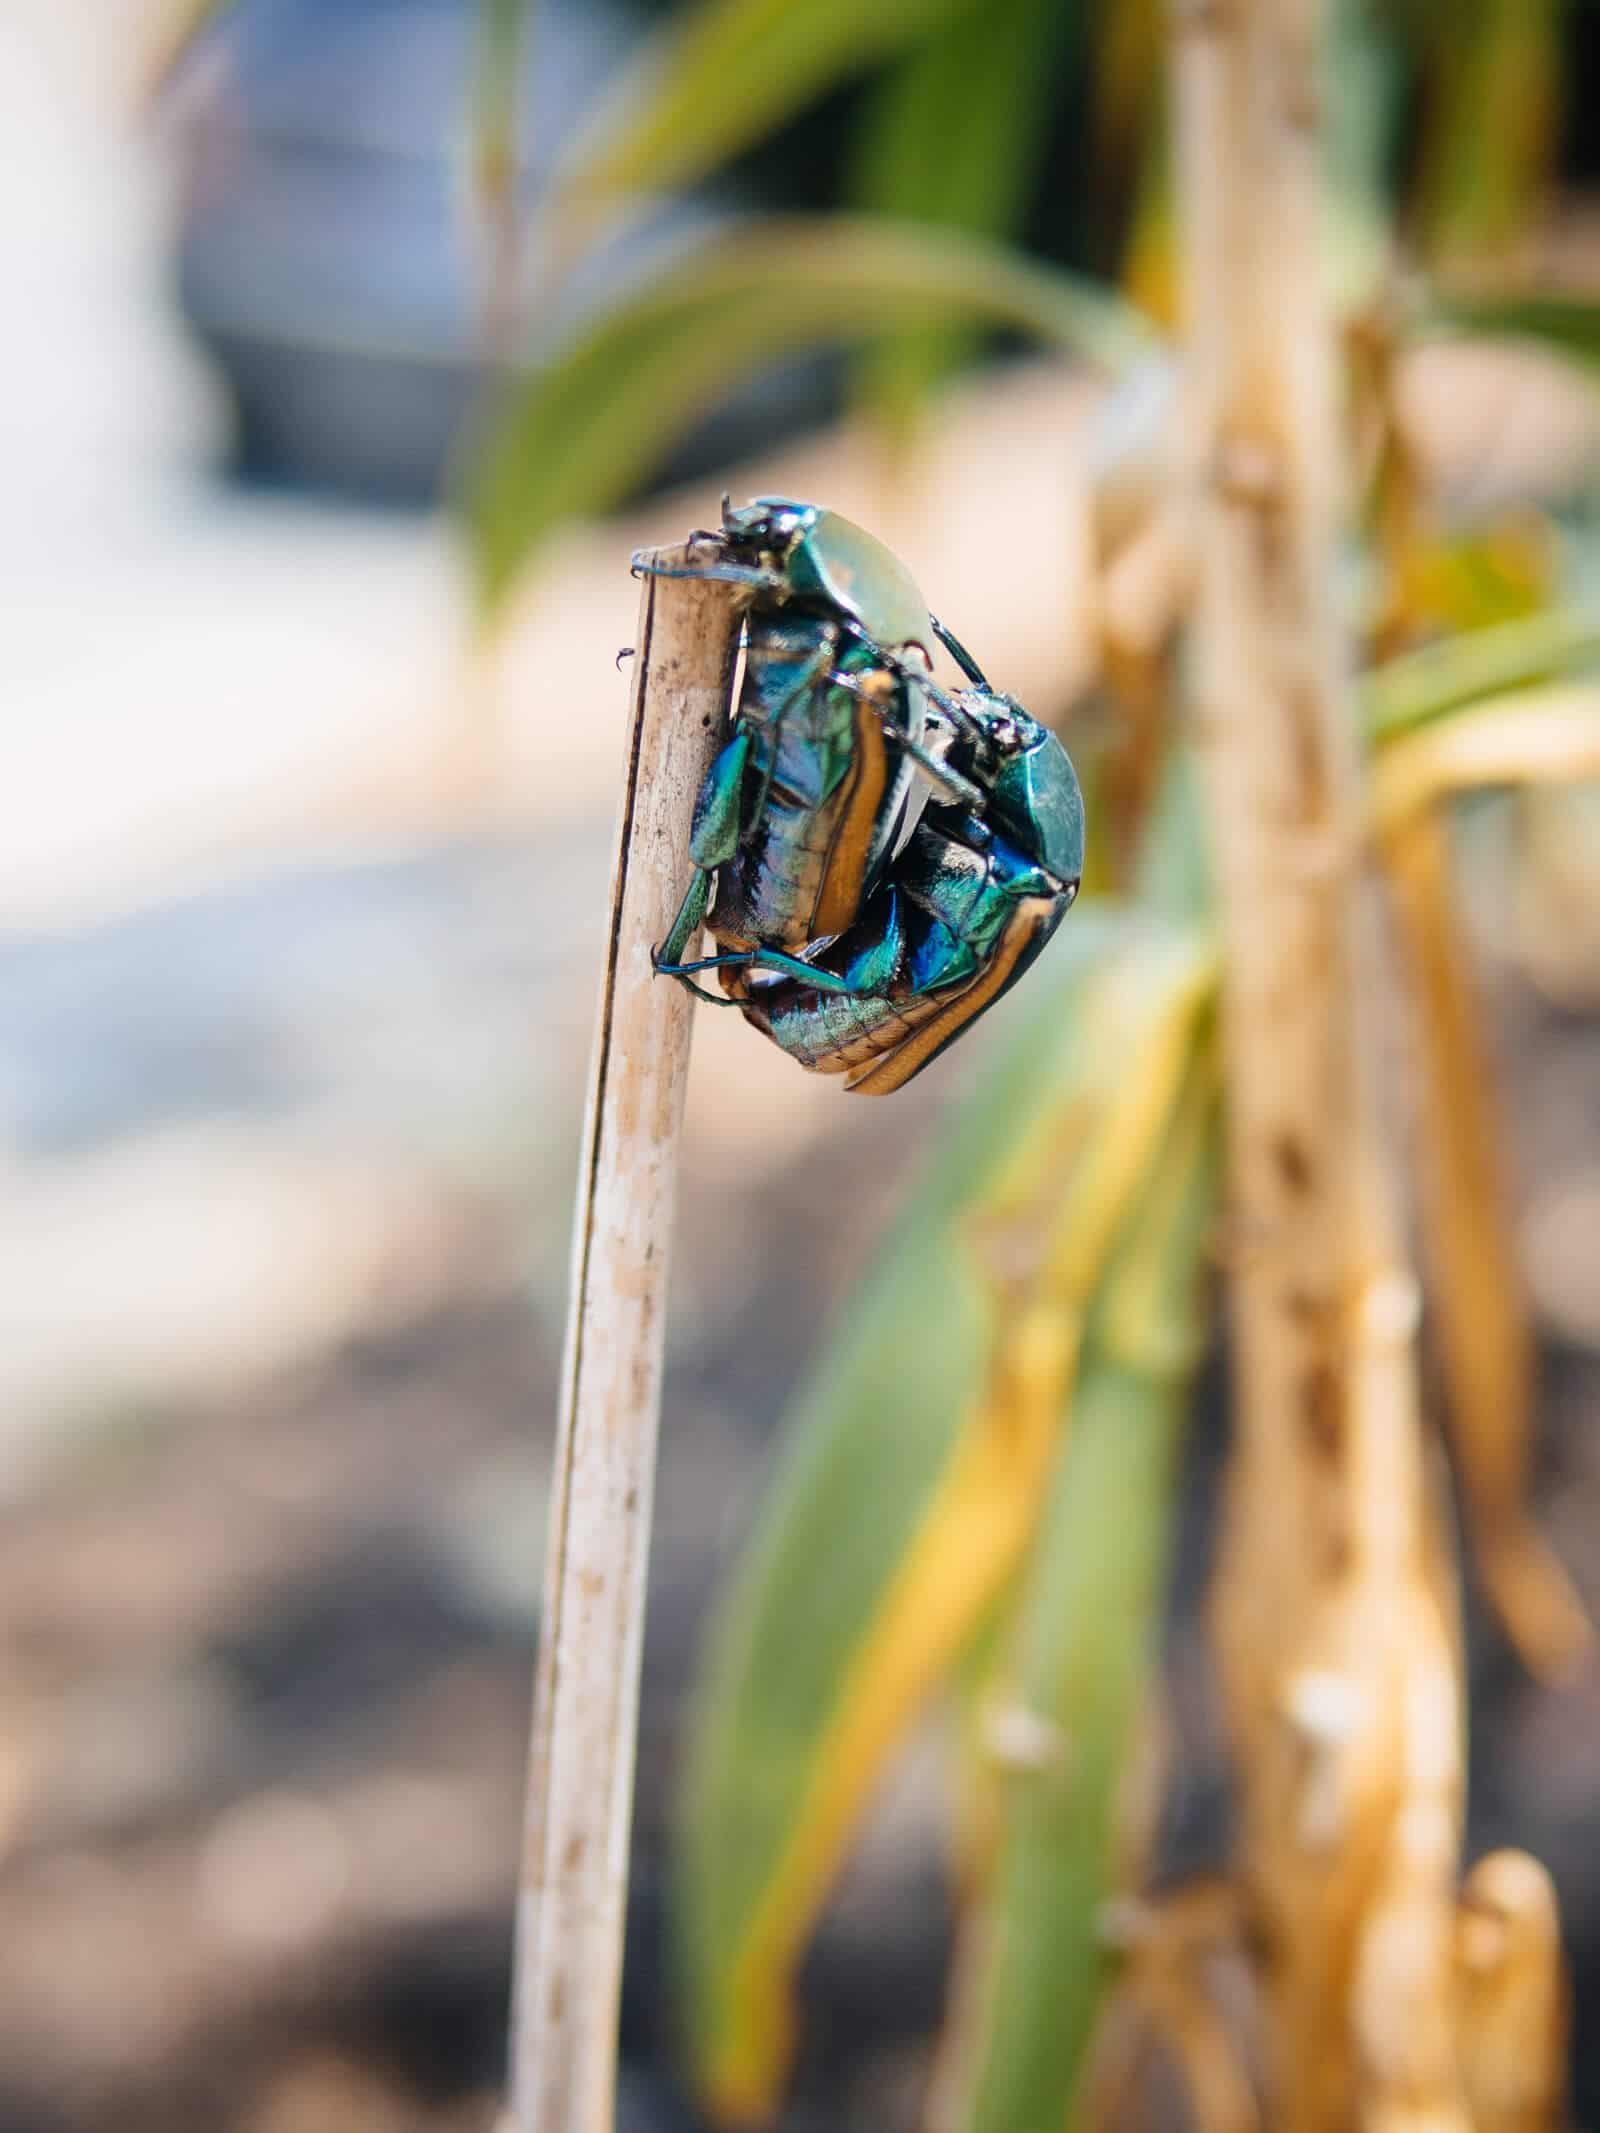 Organic pest control 101: how to get rid of fig beetles naturally